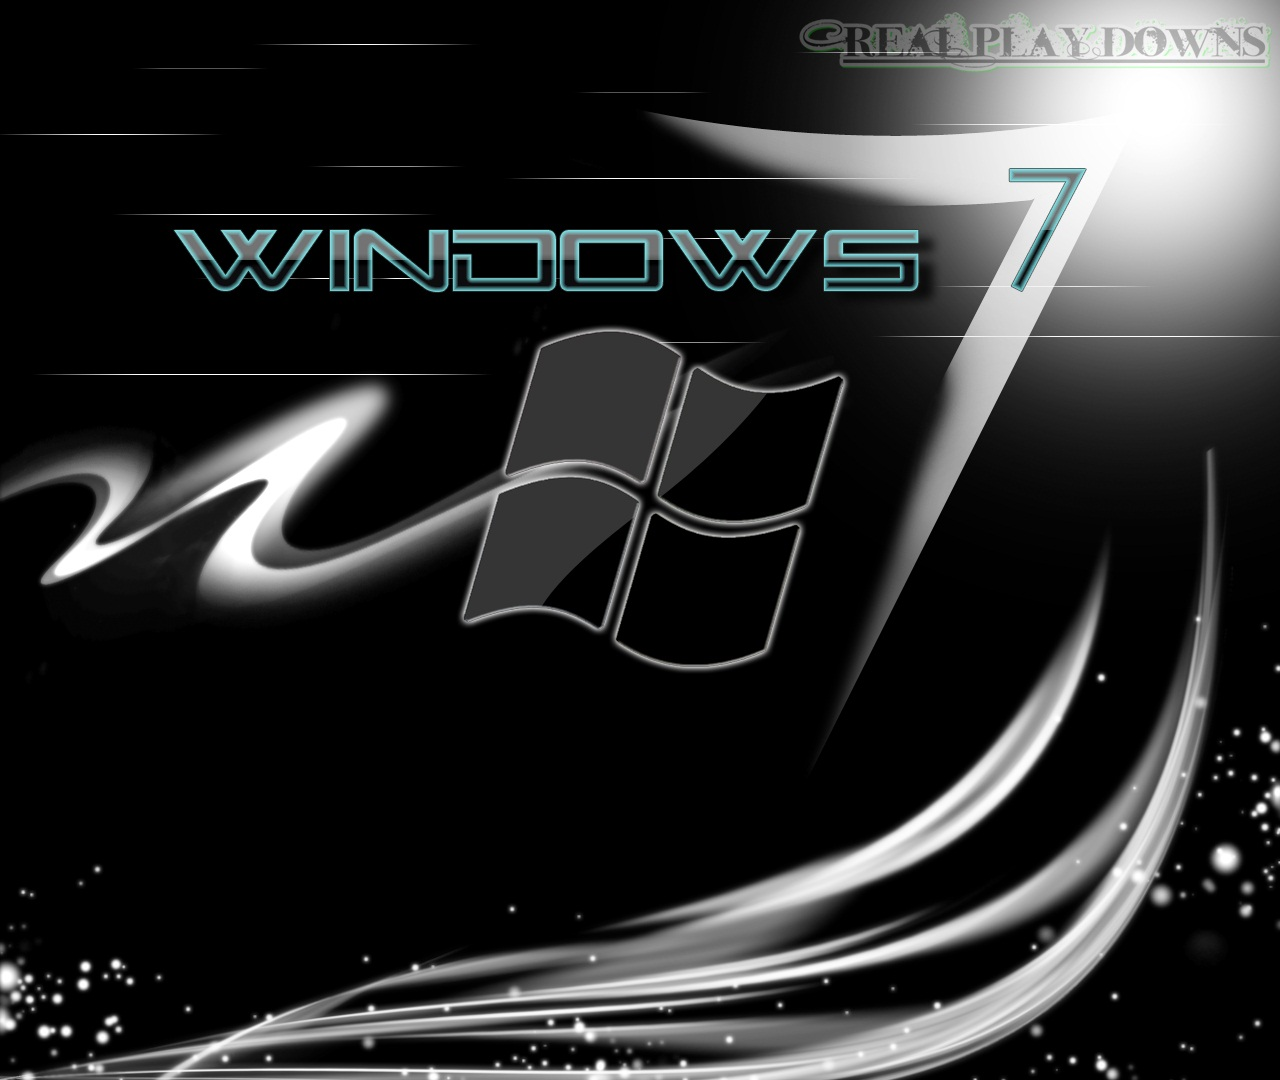 Trololo Blogg: 2011 Wallpapers For Windows 7